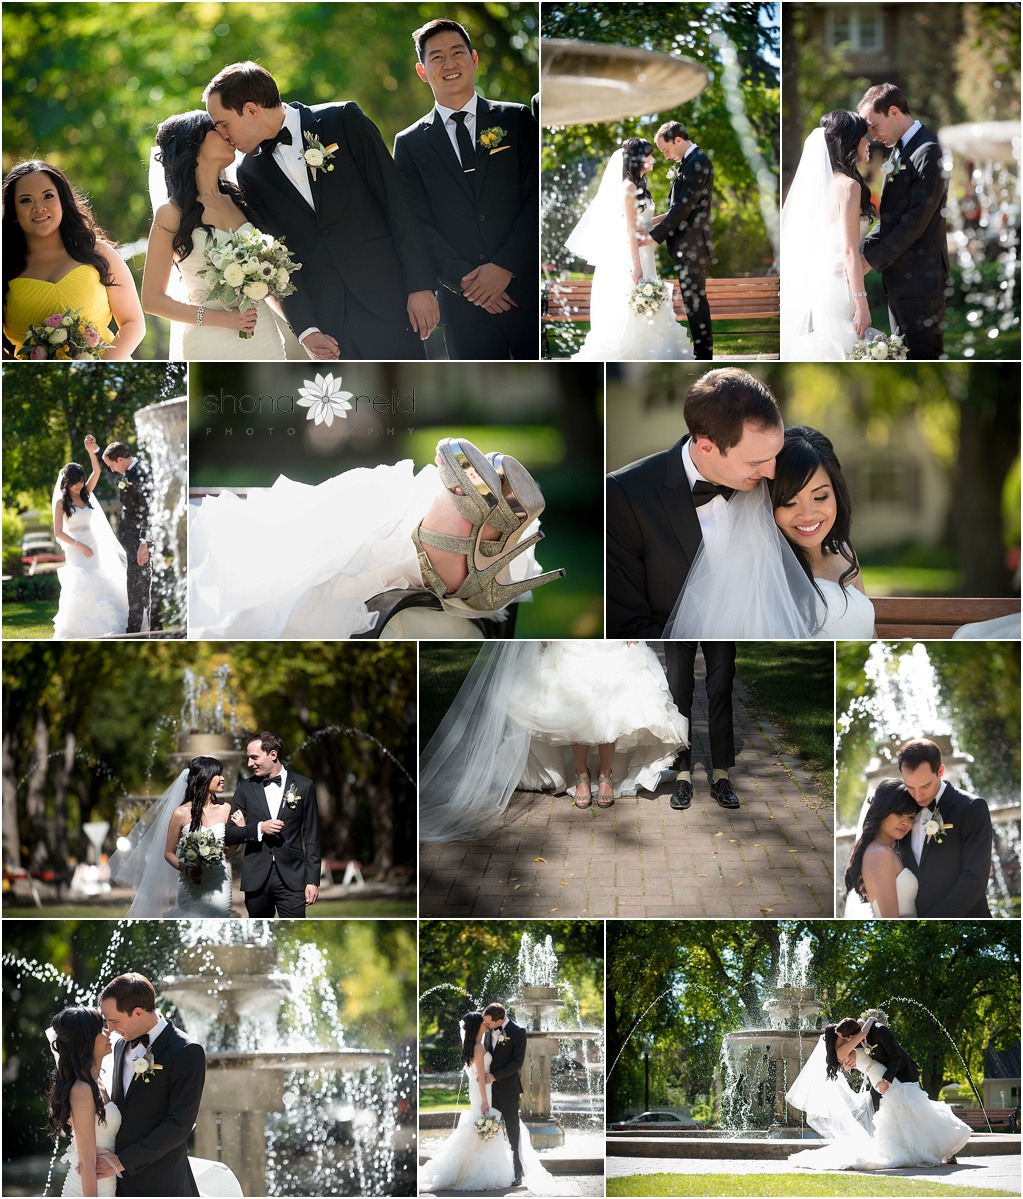 formal wedding photographs